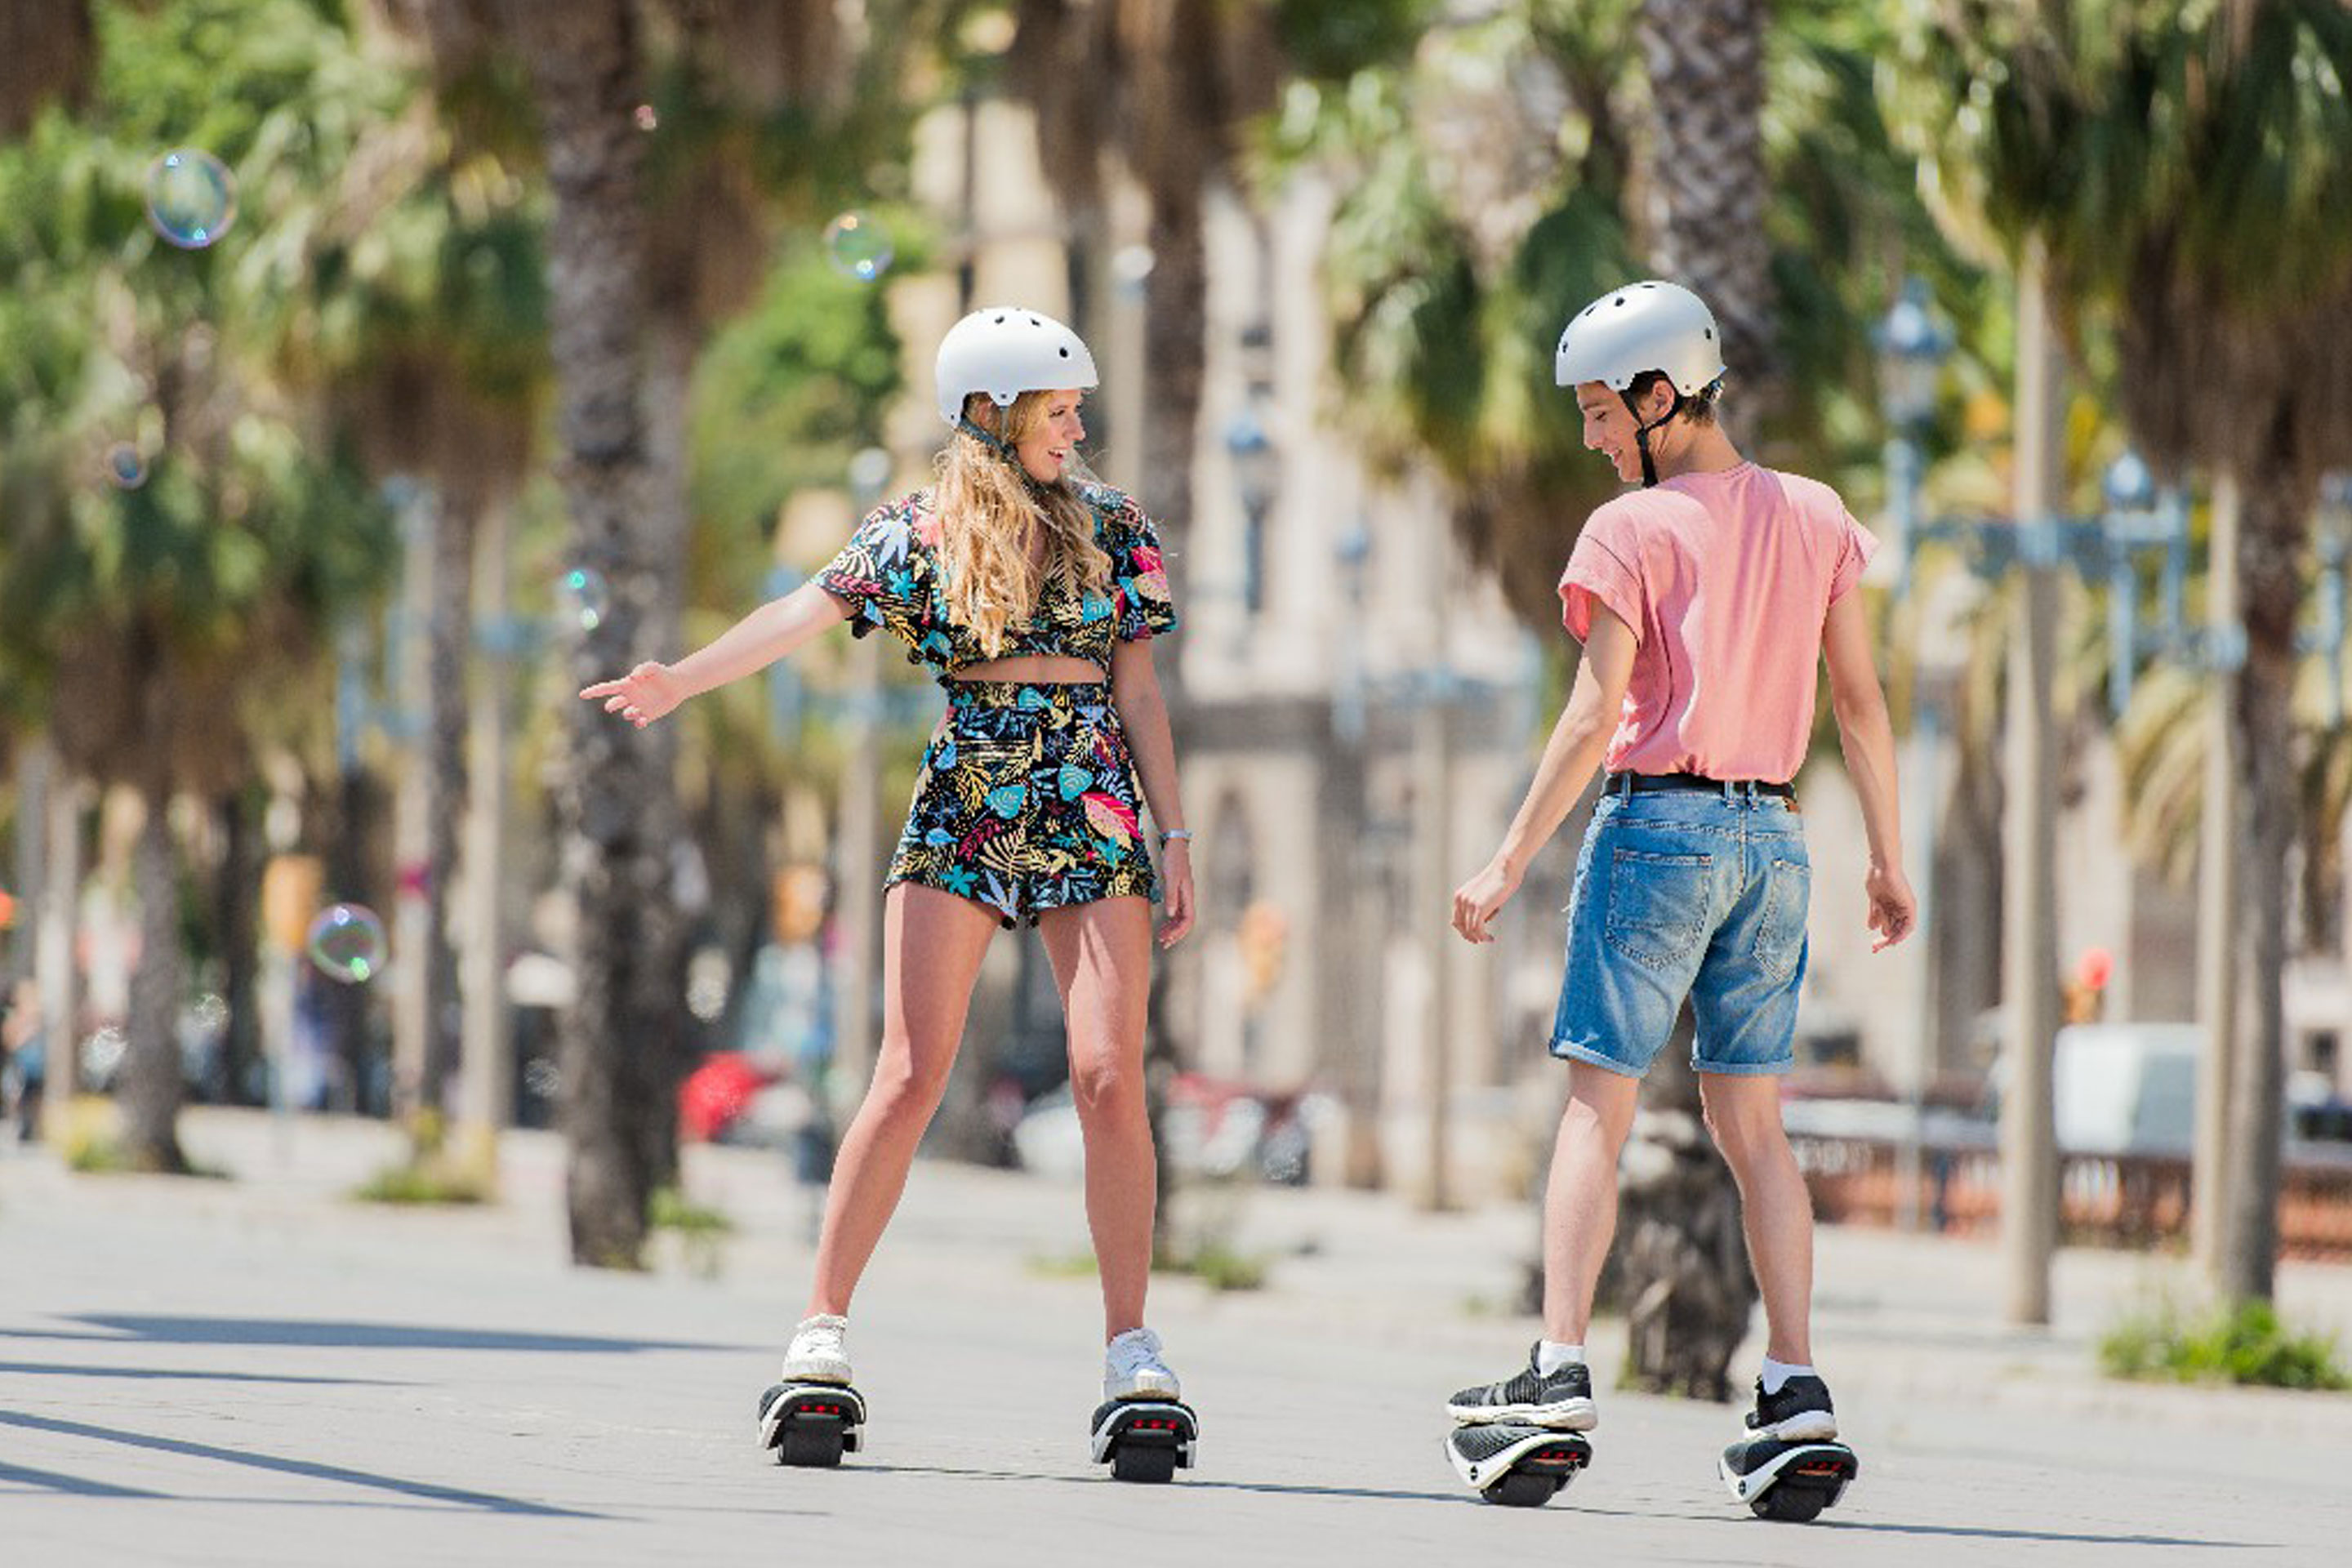 Segway's recently announced e-skates the Drift W1.